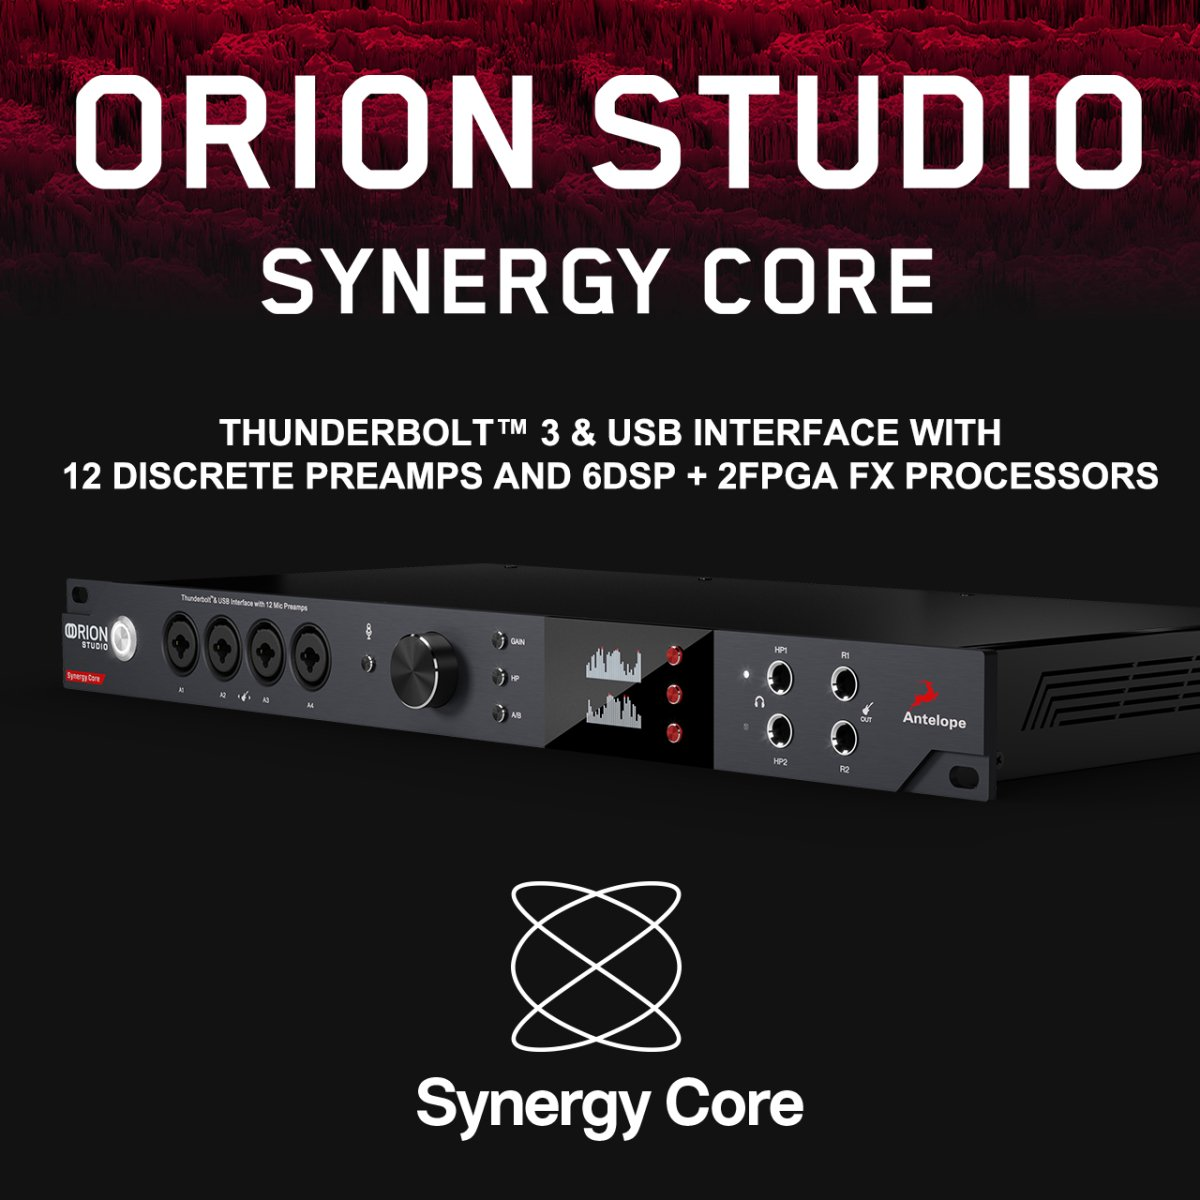 【キャンペーン復活! 】Antelope Audio Orion Studio Synergy Core